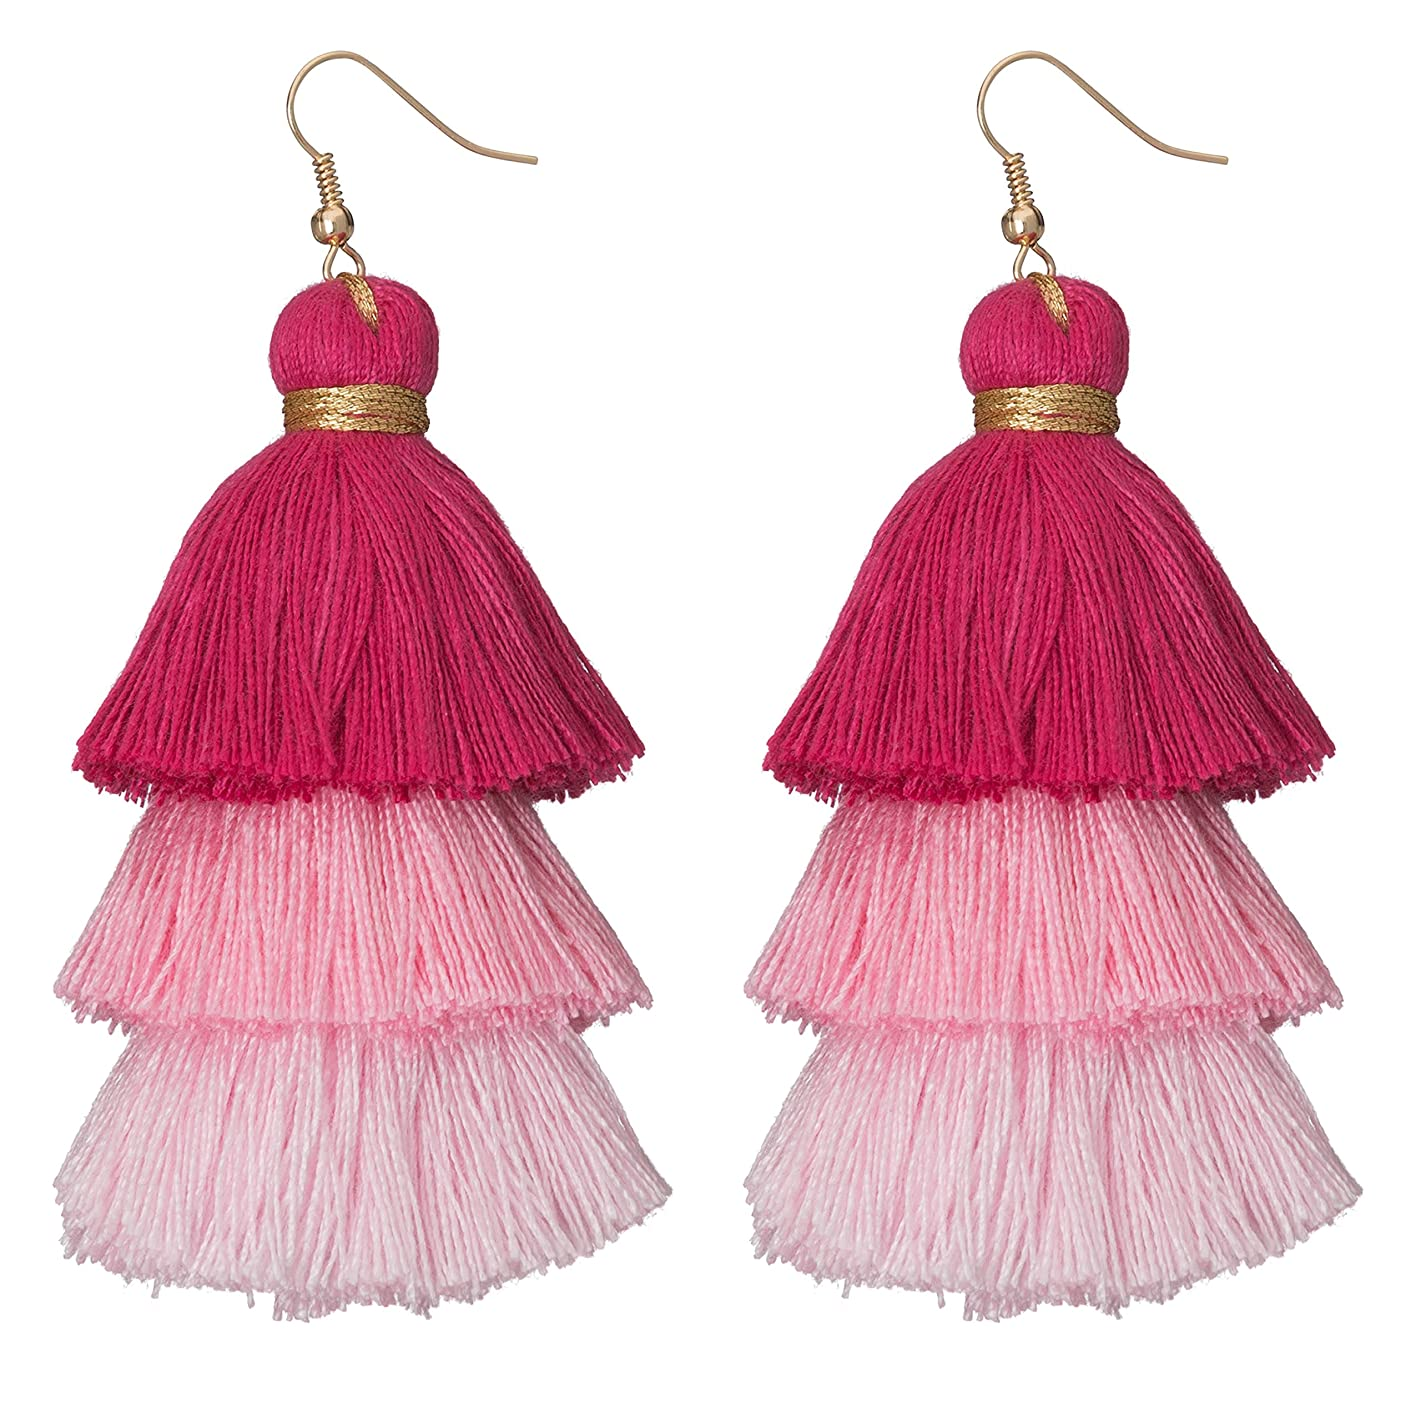 Occasionally Made Ombre Tassel Earrings, Pink